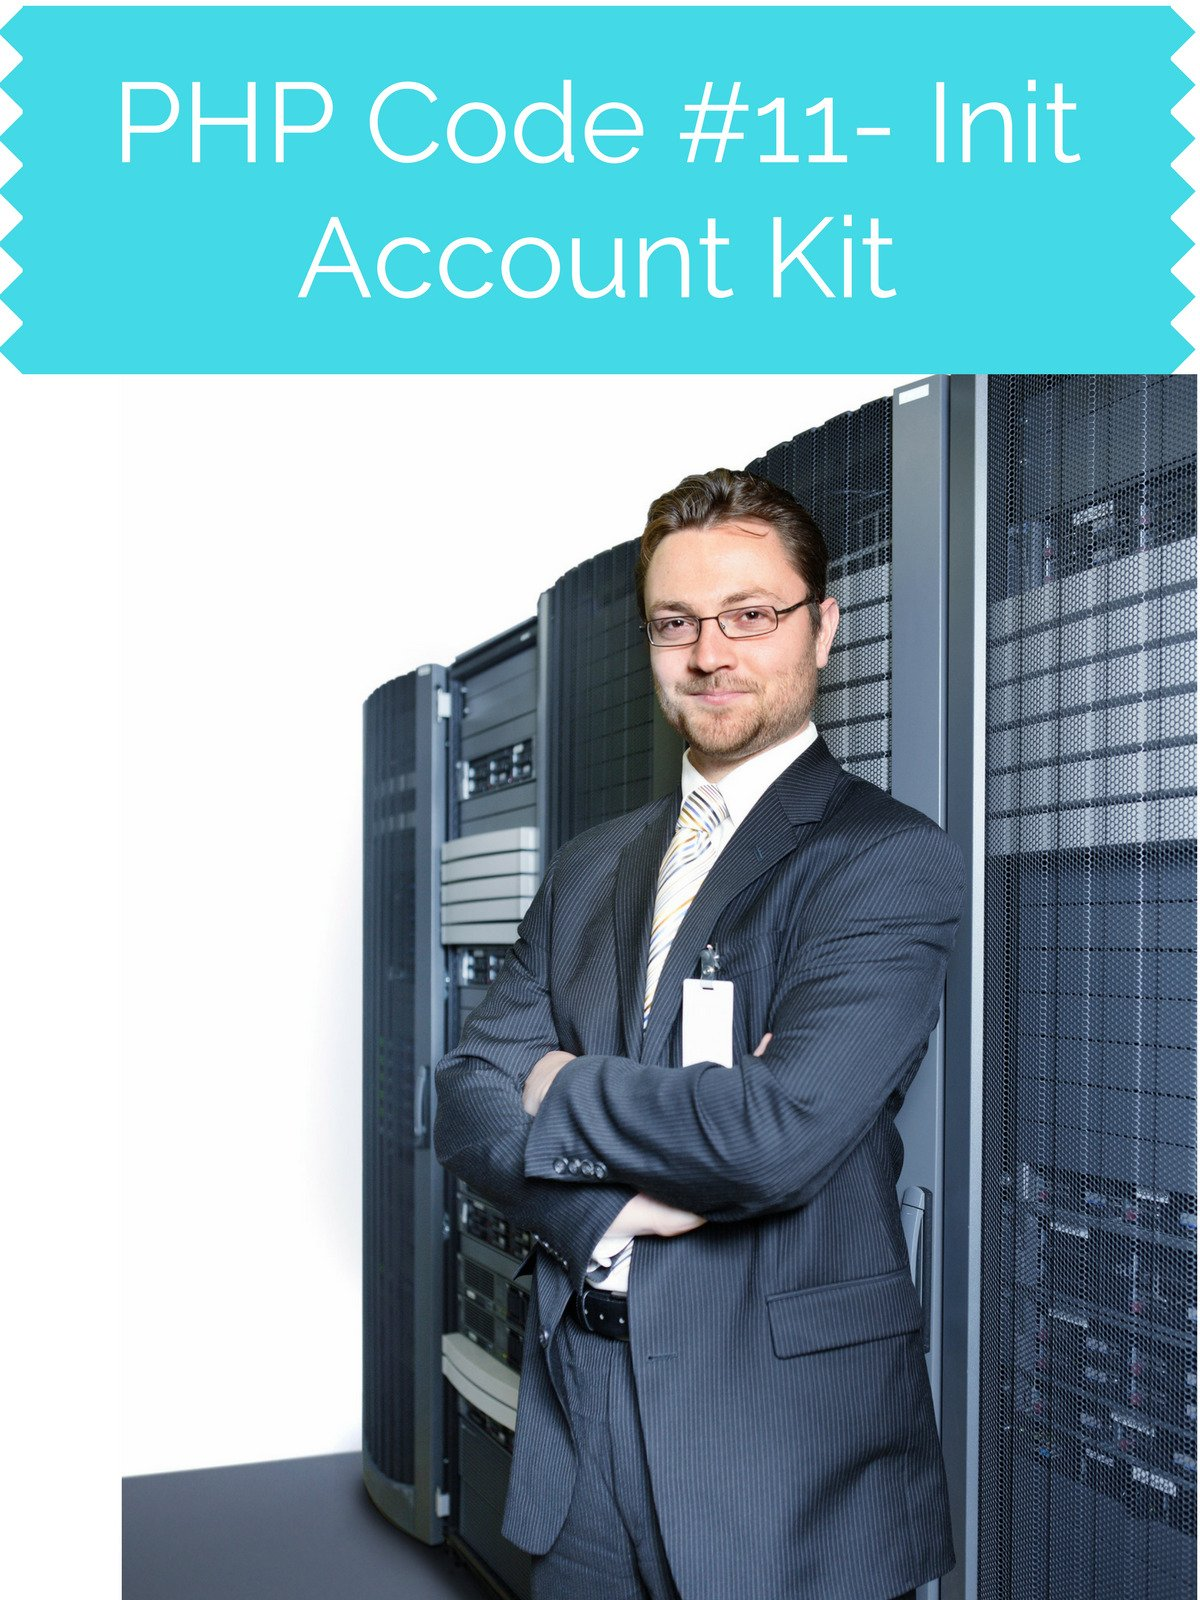 PHP Code #11 Init Account Kit